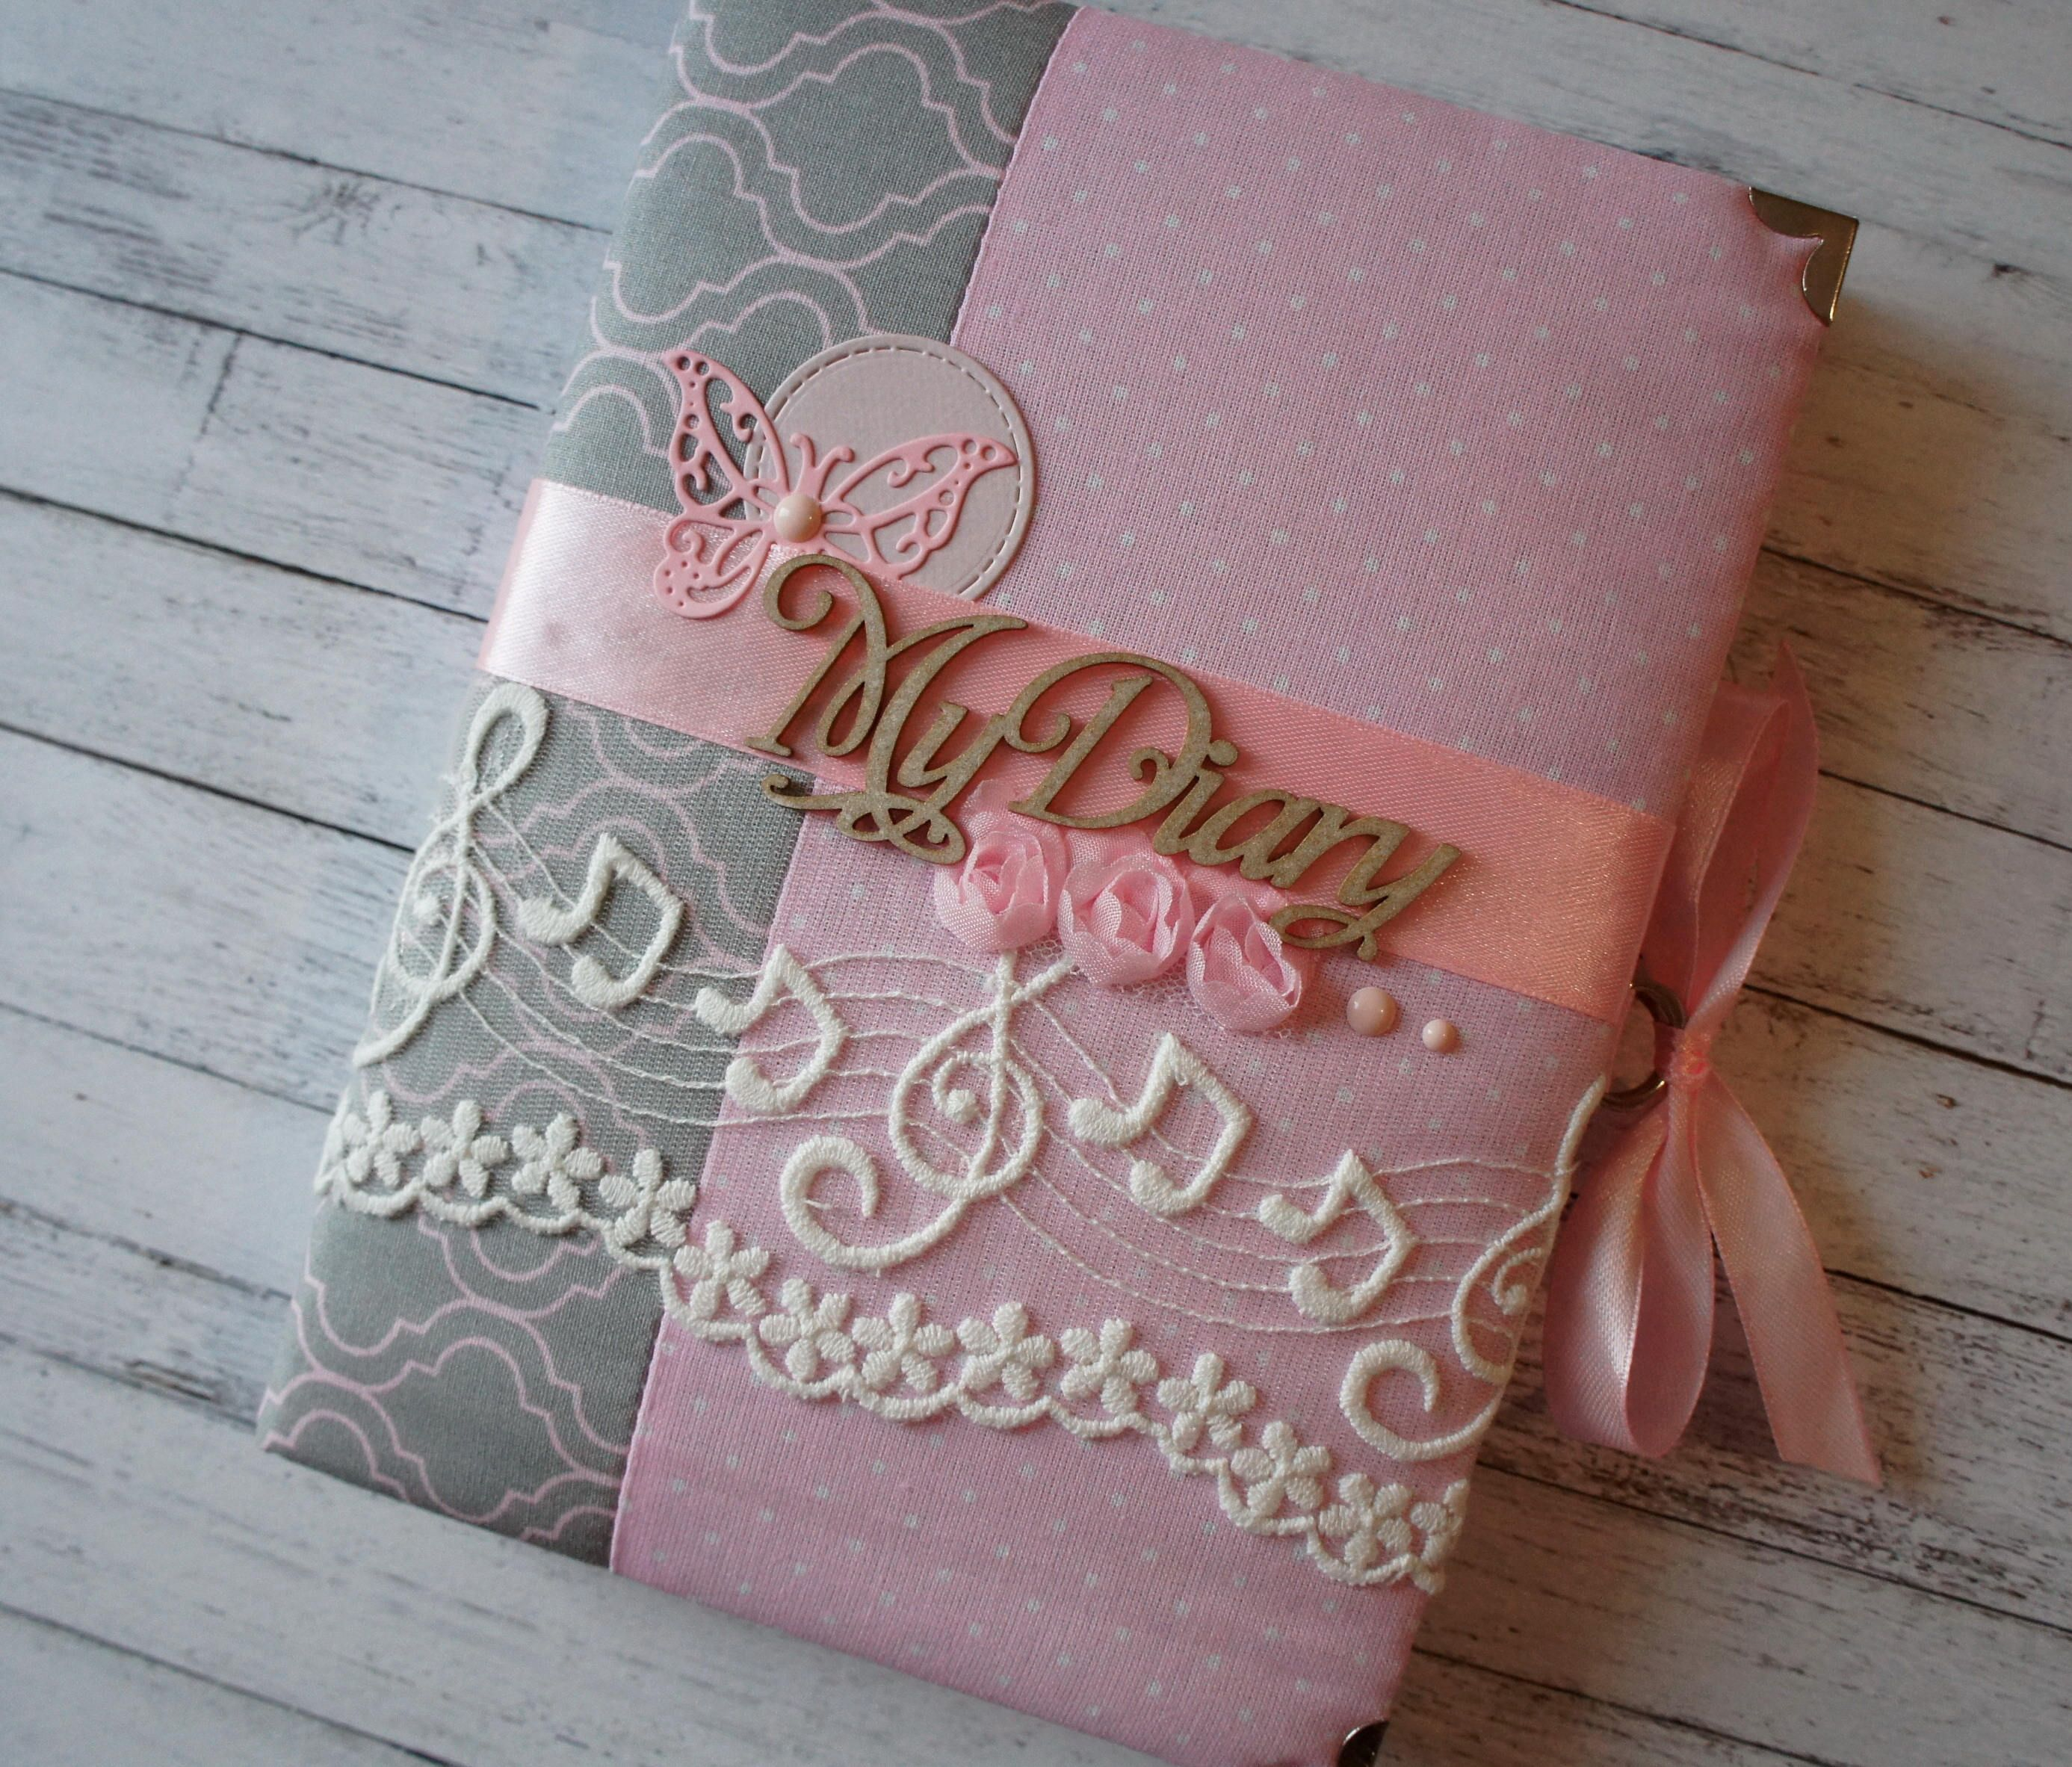 diary with lock secret diary personal journal girl s diary